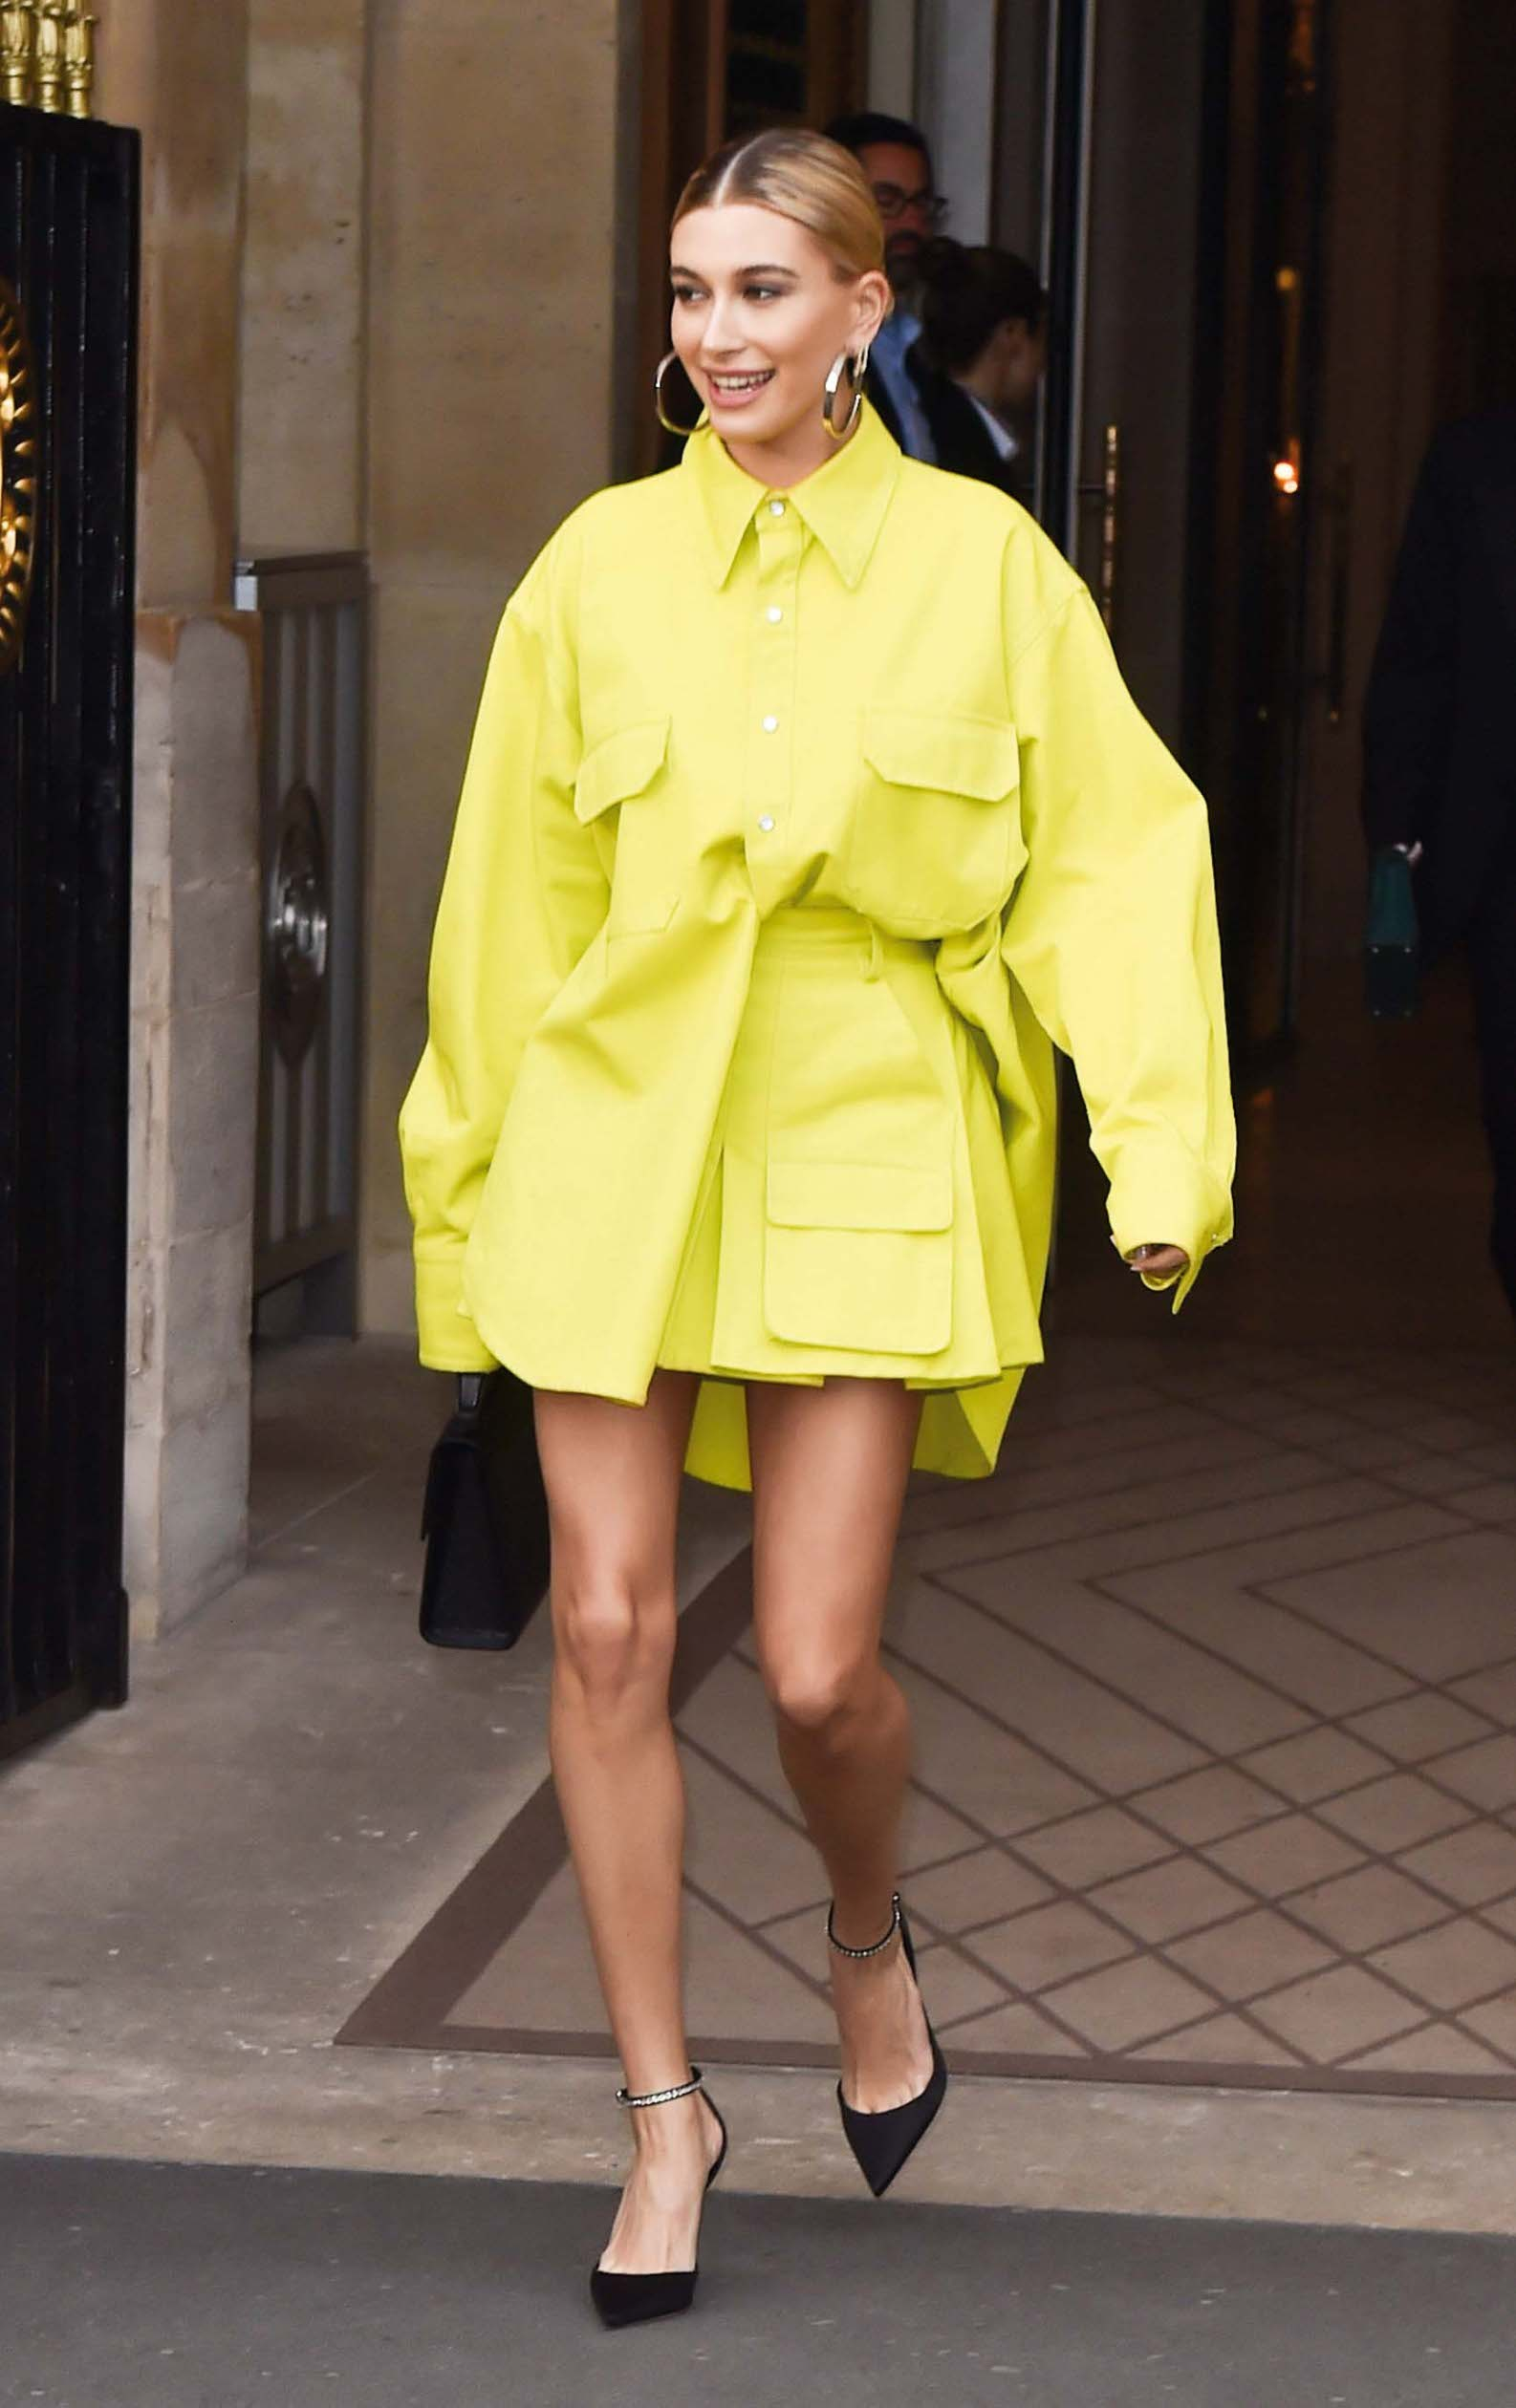 Hailey Baldwin arrives at a Vogue party in Paris dressed in Yellow. 03 Mar 2019, Image: 417012523, License: Rights-managed, Restrictions: World Rights, Model Release: no, Credit line: Profimedia, Mega Agency